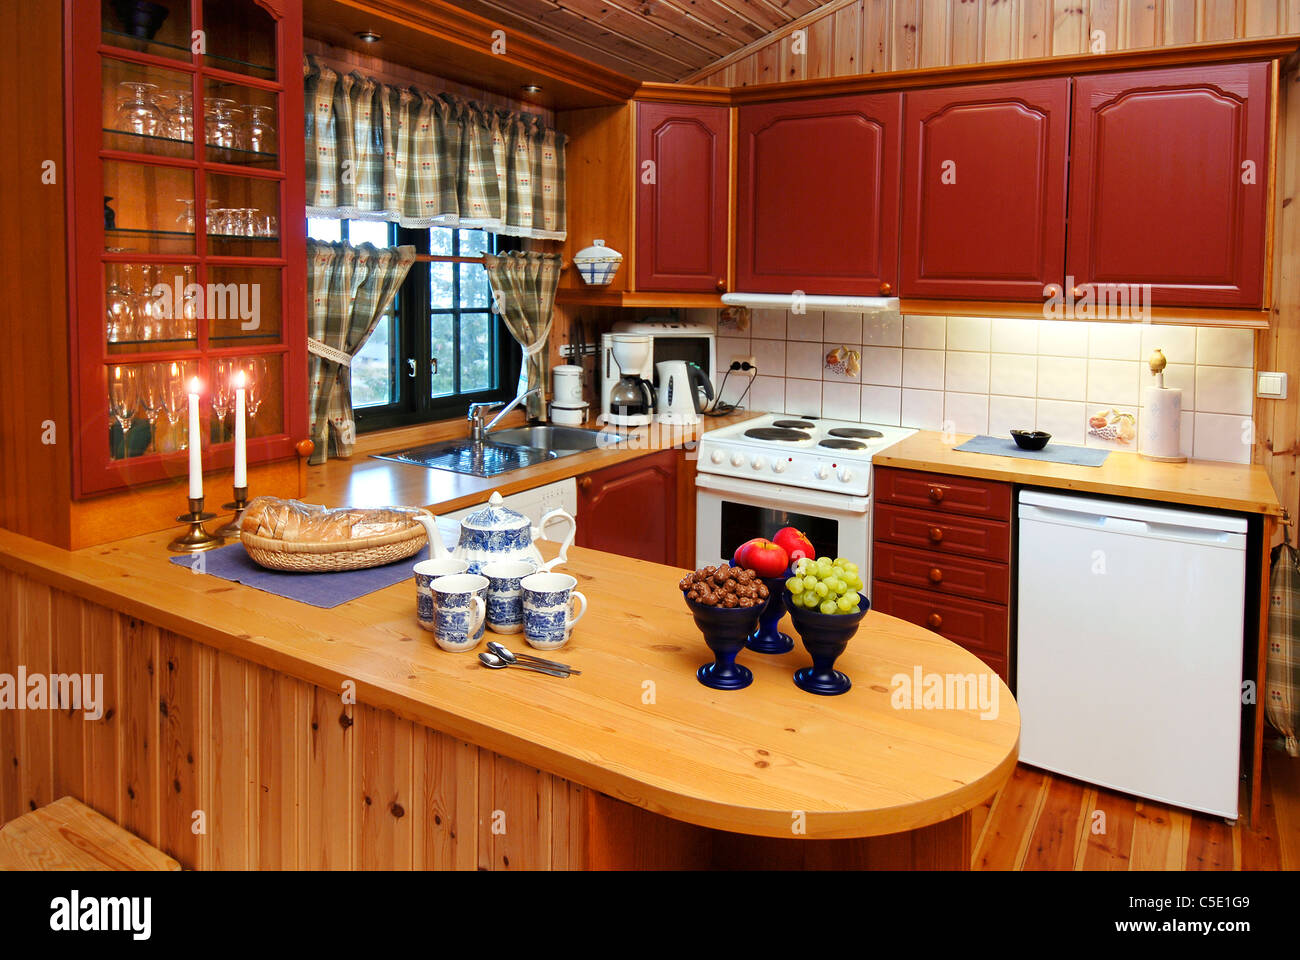 View of wooden countertop with brown cabinets in the kitchen at home Stock Photo